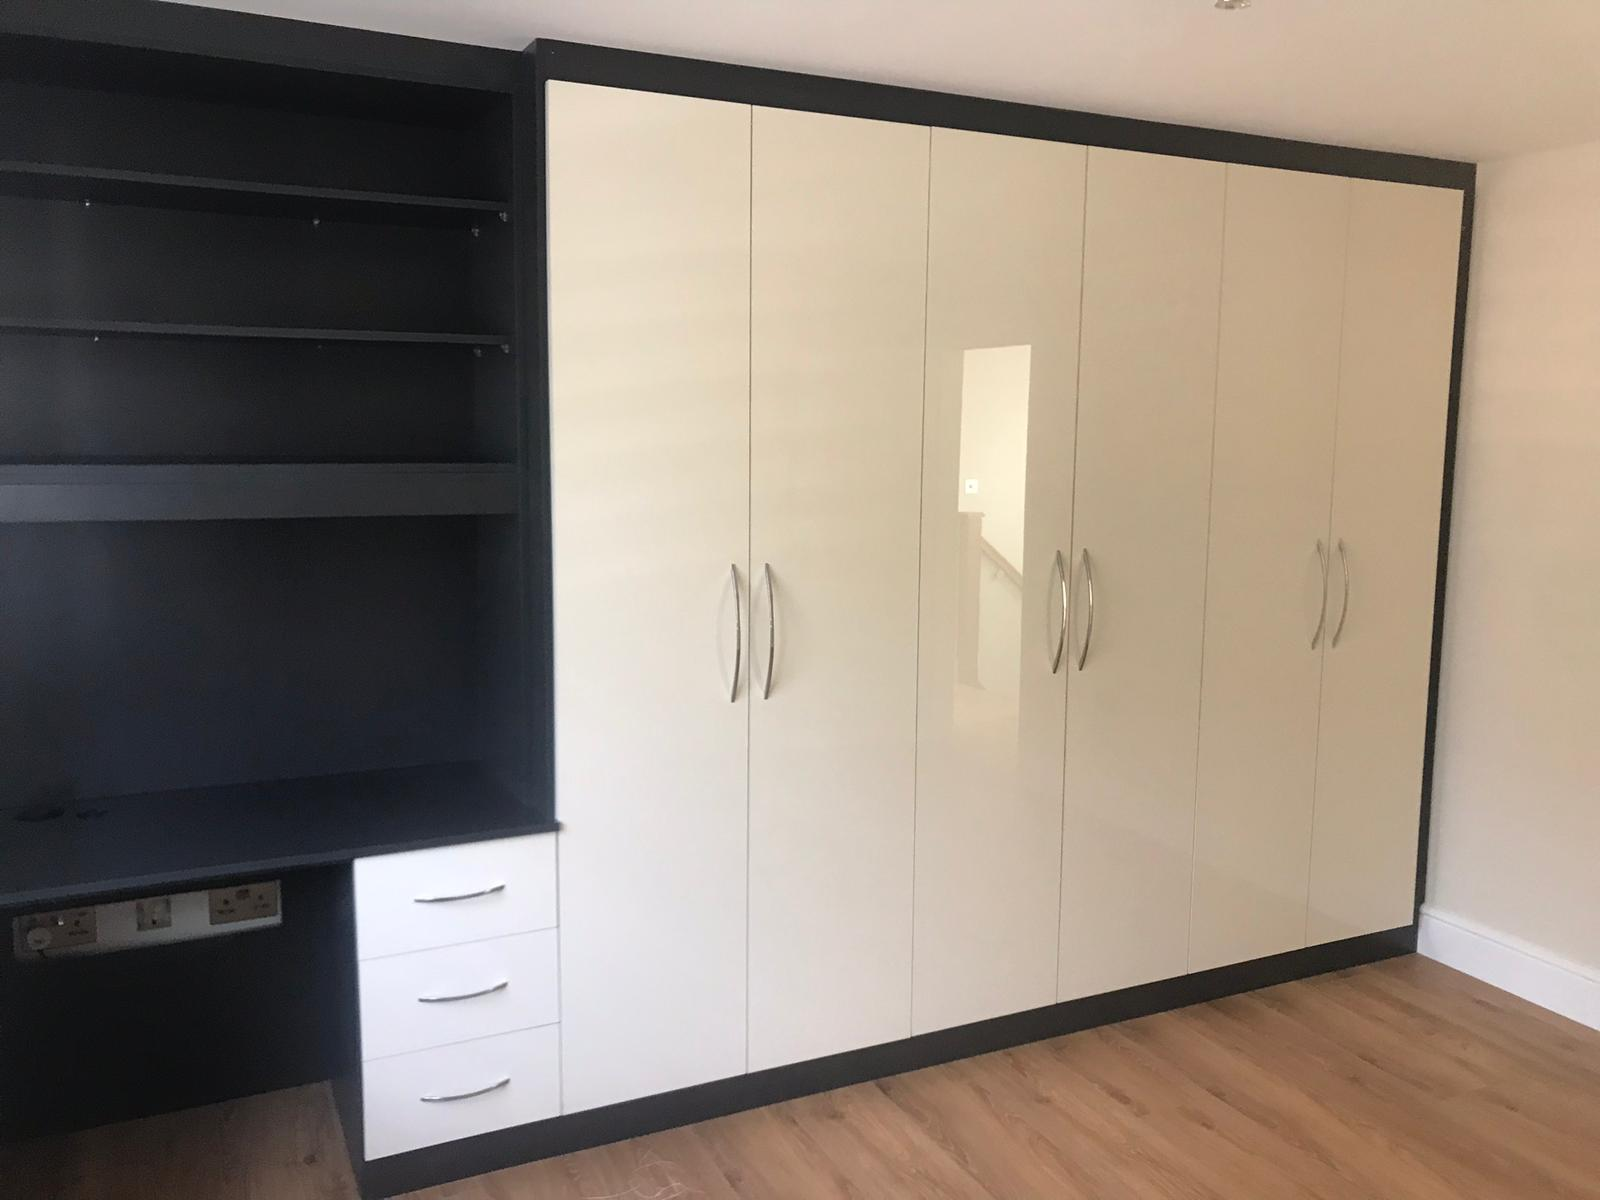 Bespoke fitted wardrobe utilizing a high gloss ultra-white and pebble black wood